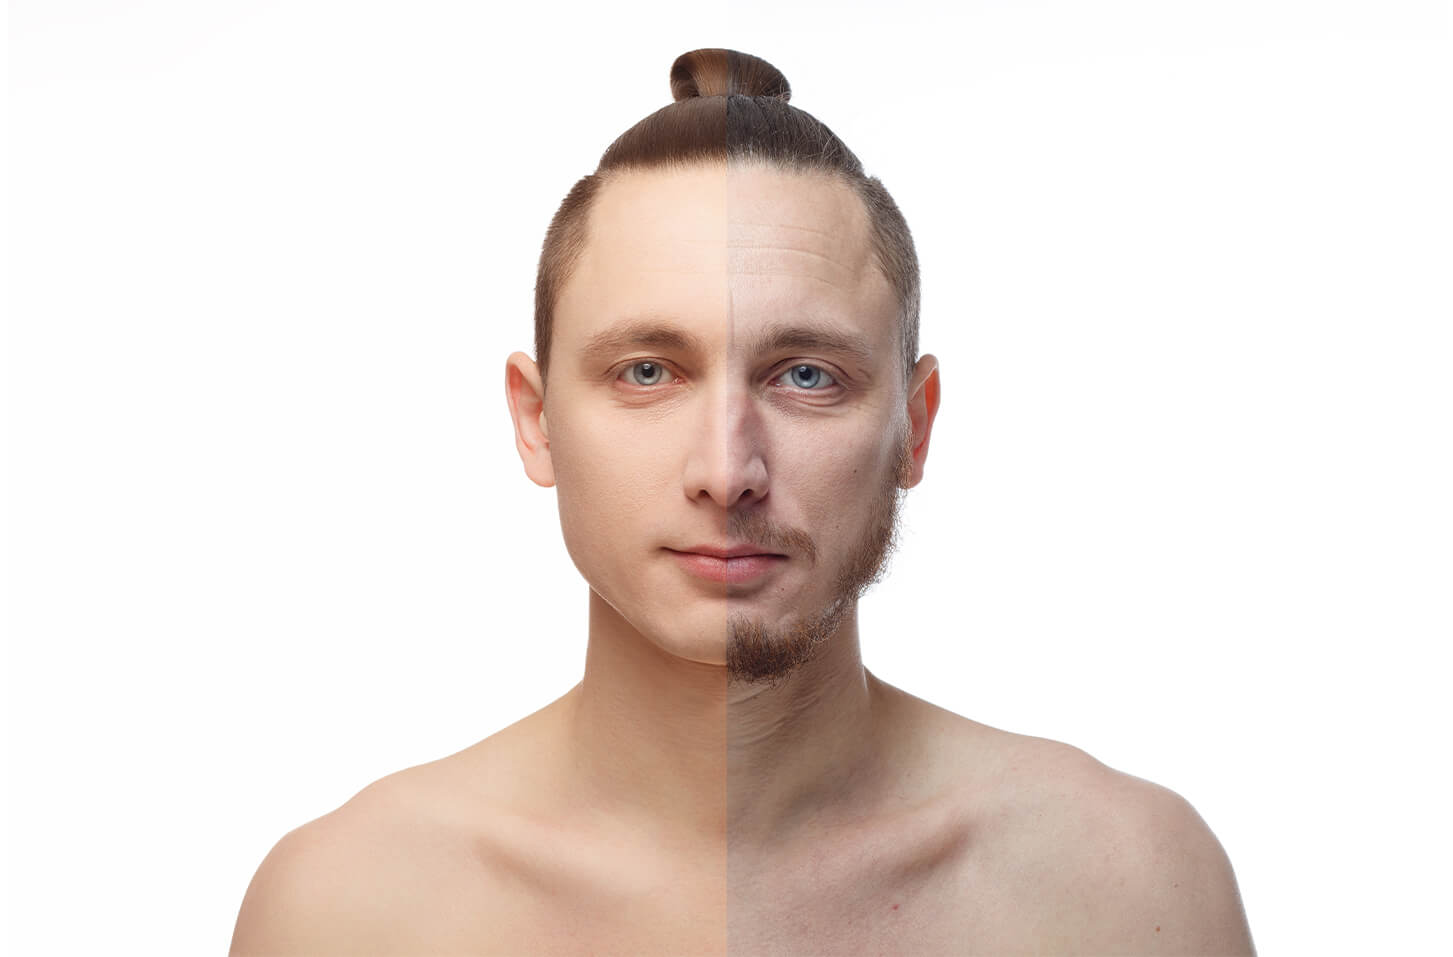 man profile before and after dermaplaning, split face